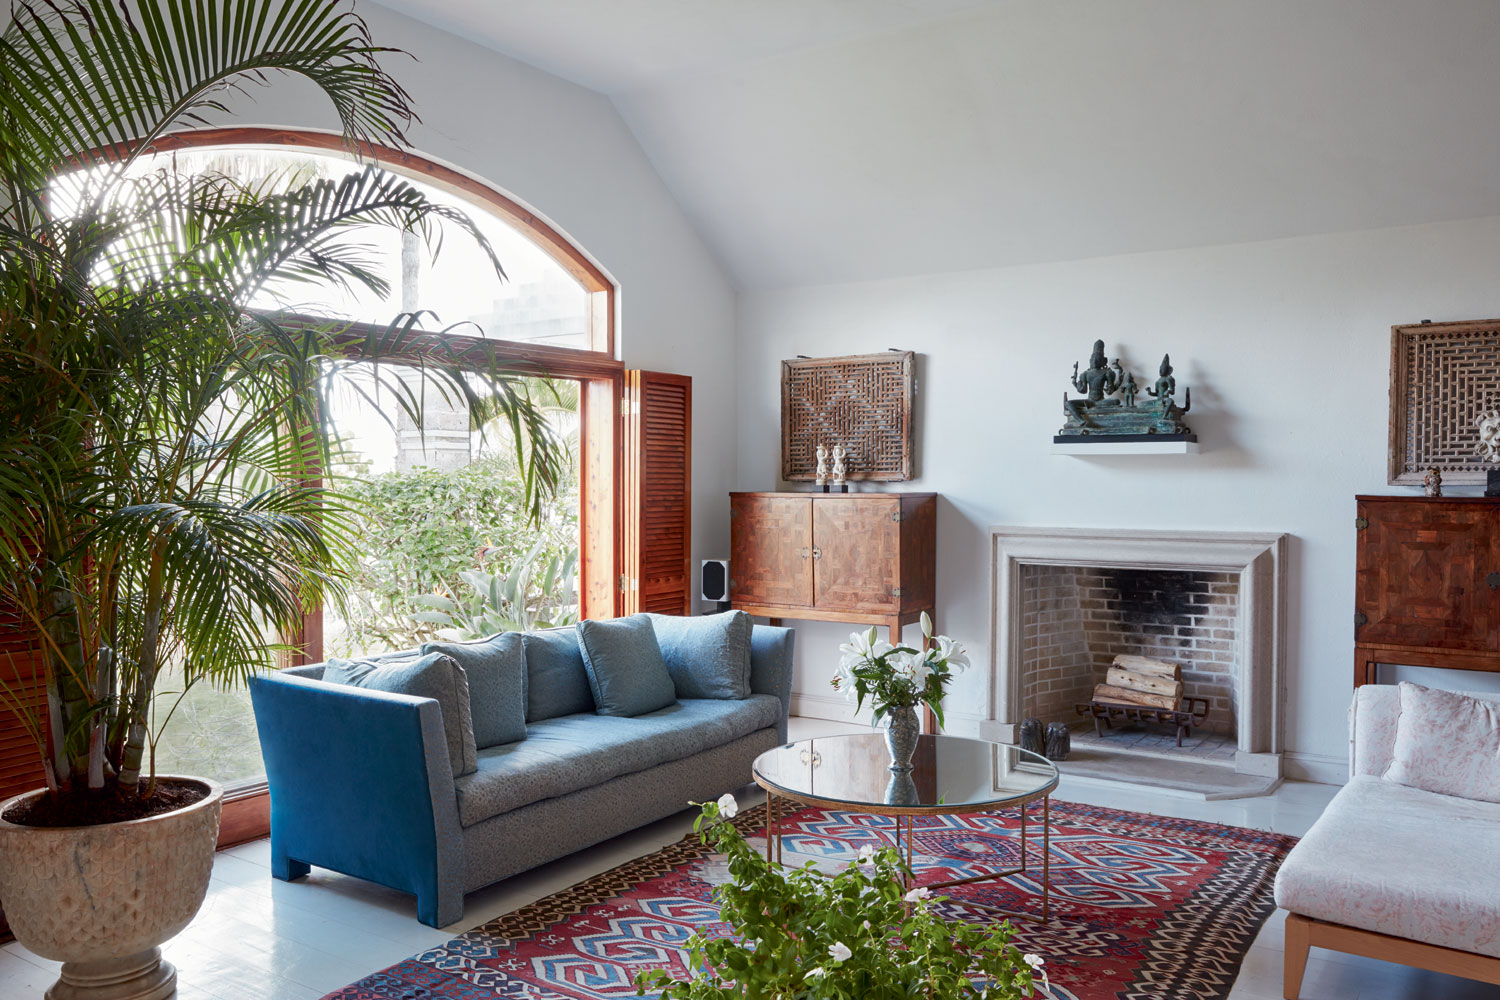 Finishes inside the residence add an elegant, international twist to the authentic island architecture, from English cabinetry and stone fireplaces to Moroccan-style marble mosaics.